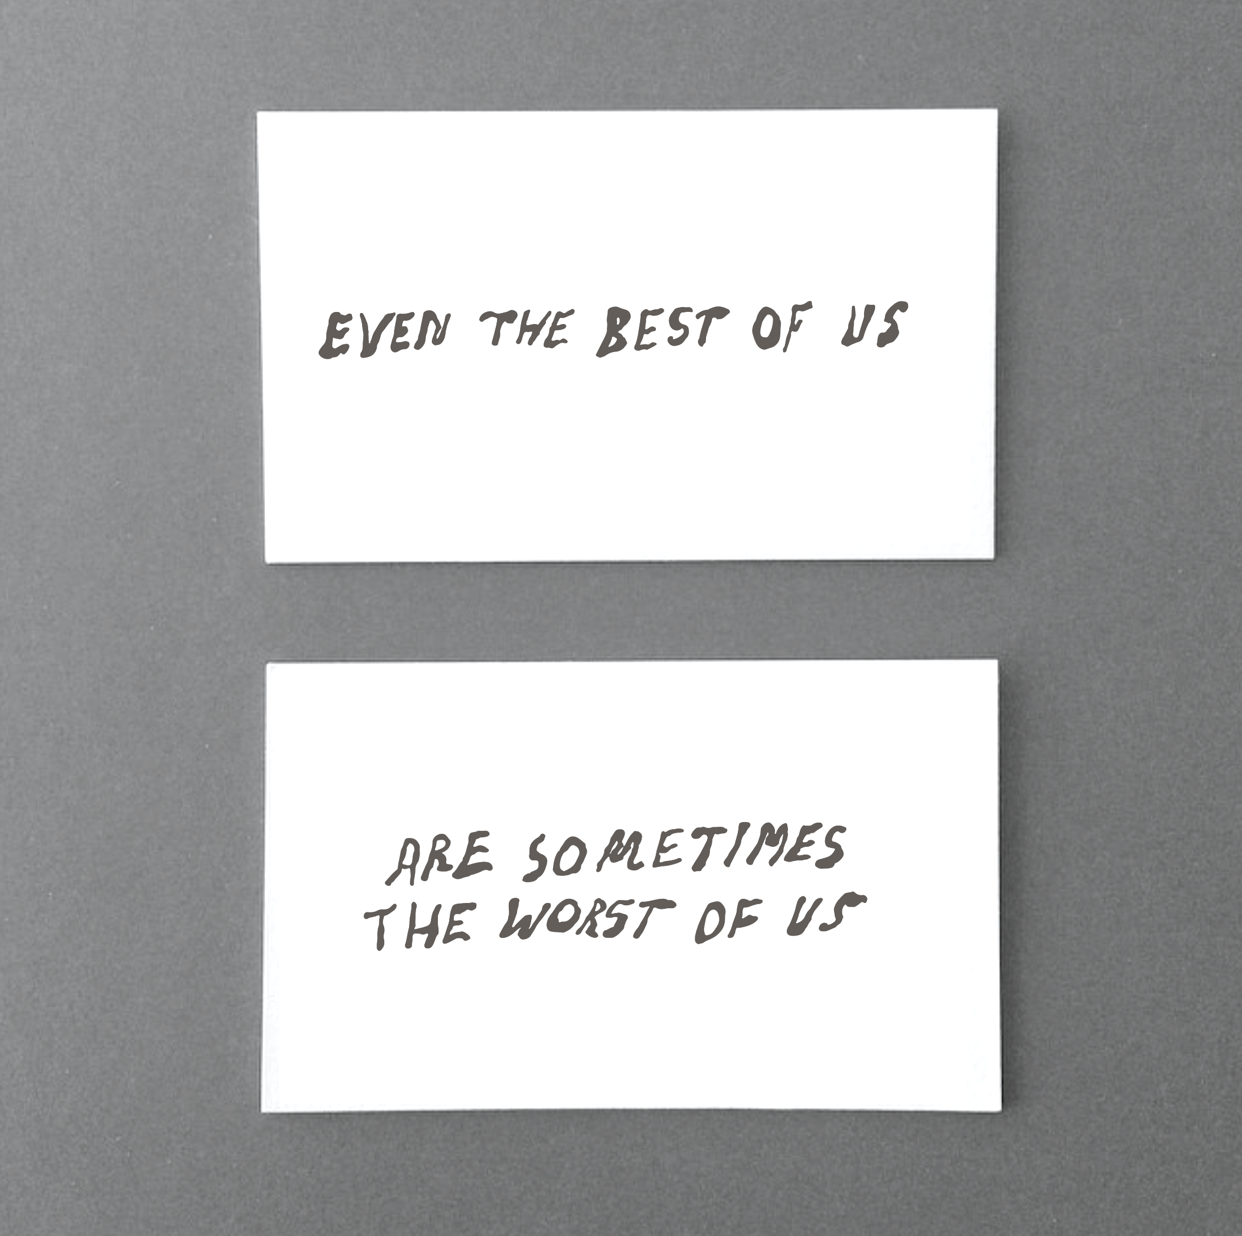 Even the best of us, 2014